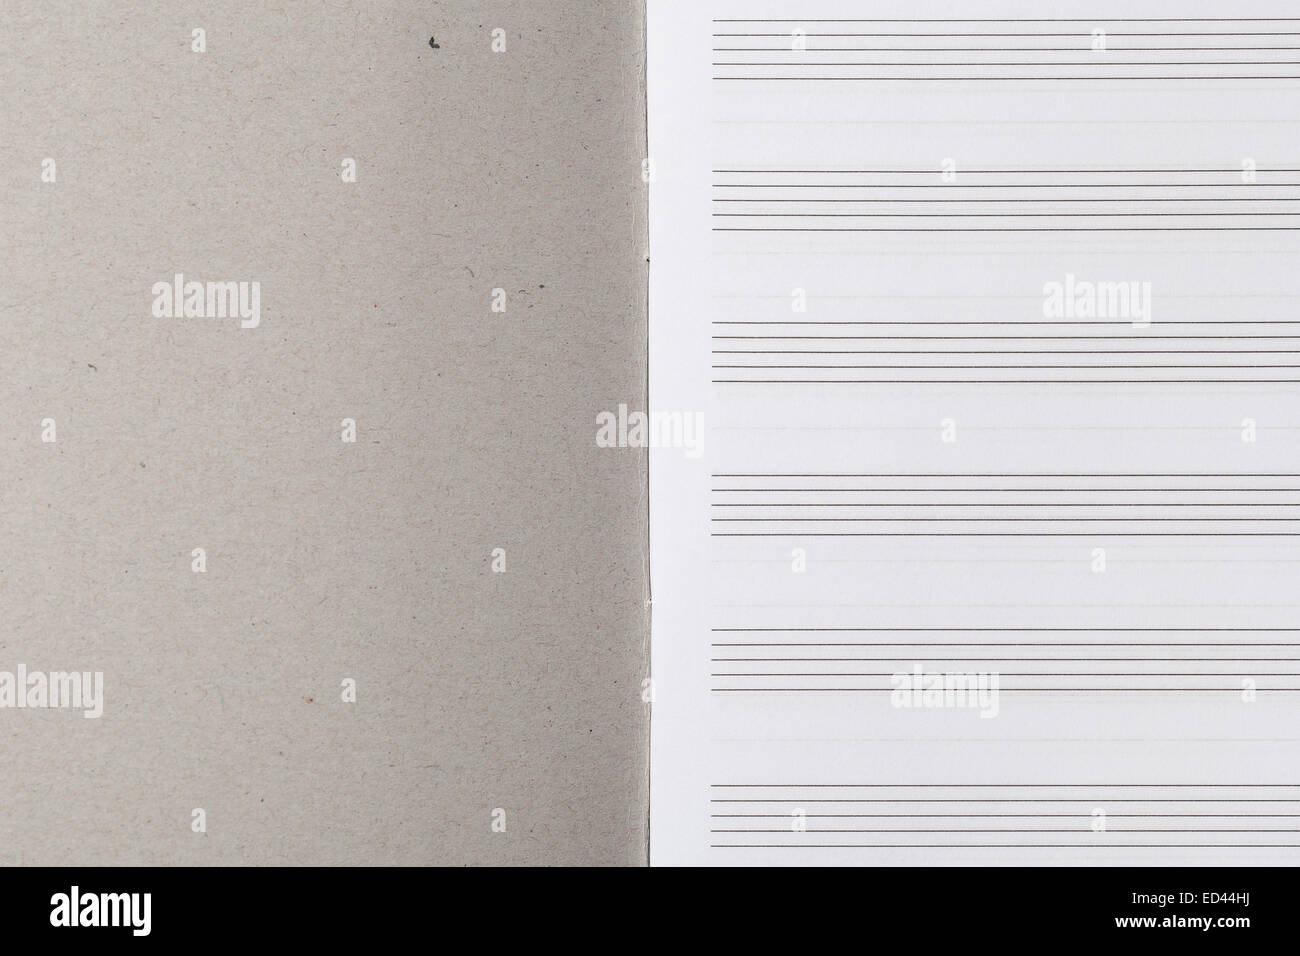 notebook for musical notes with blank sheets with staves